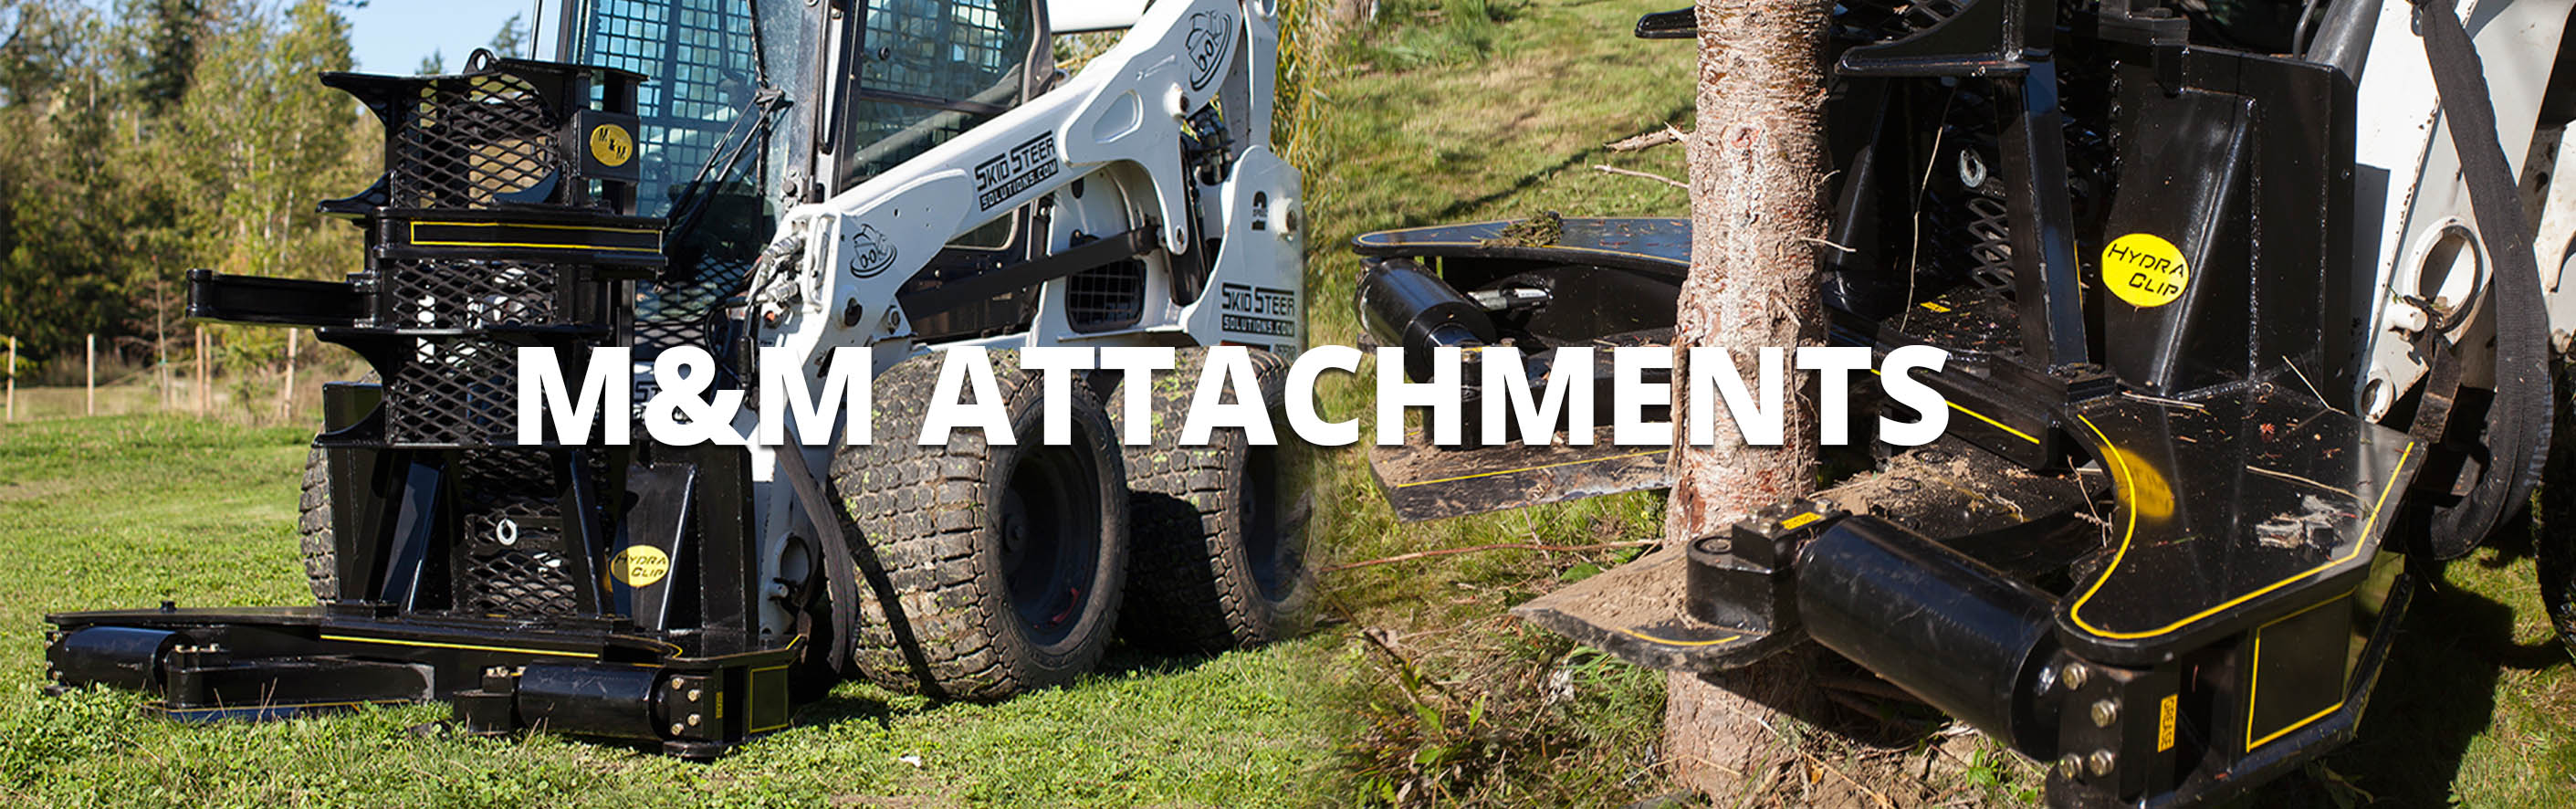 m-m-attachments-banner.jpg